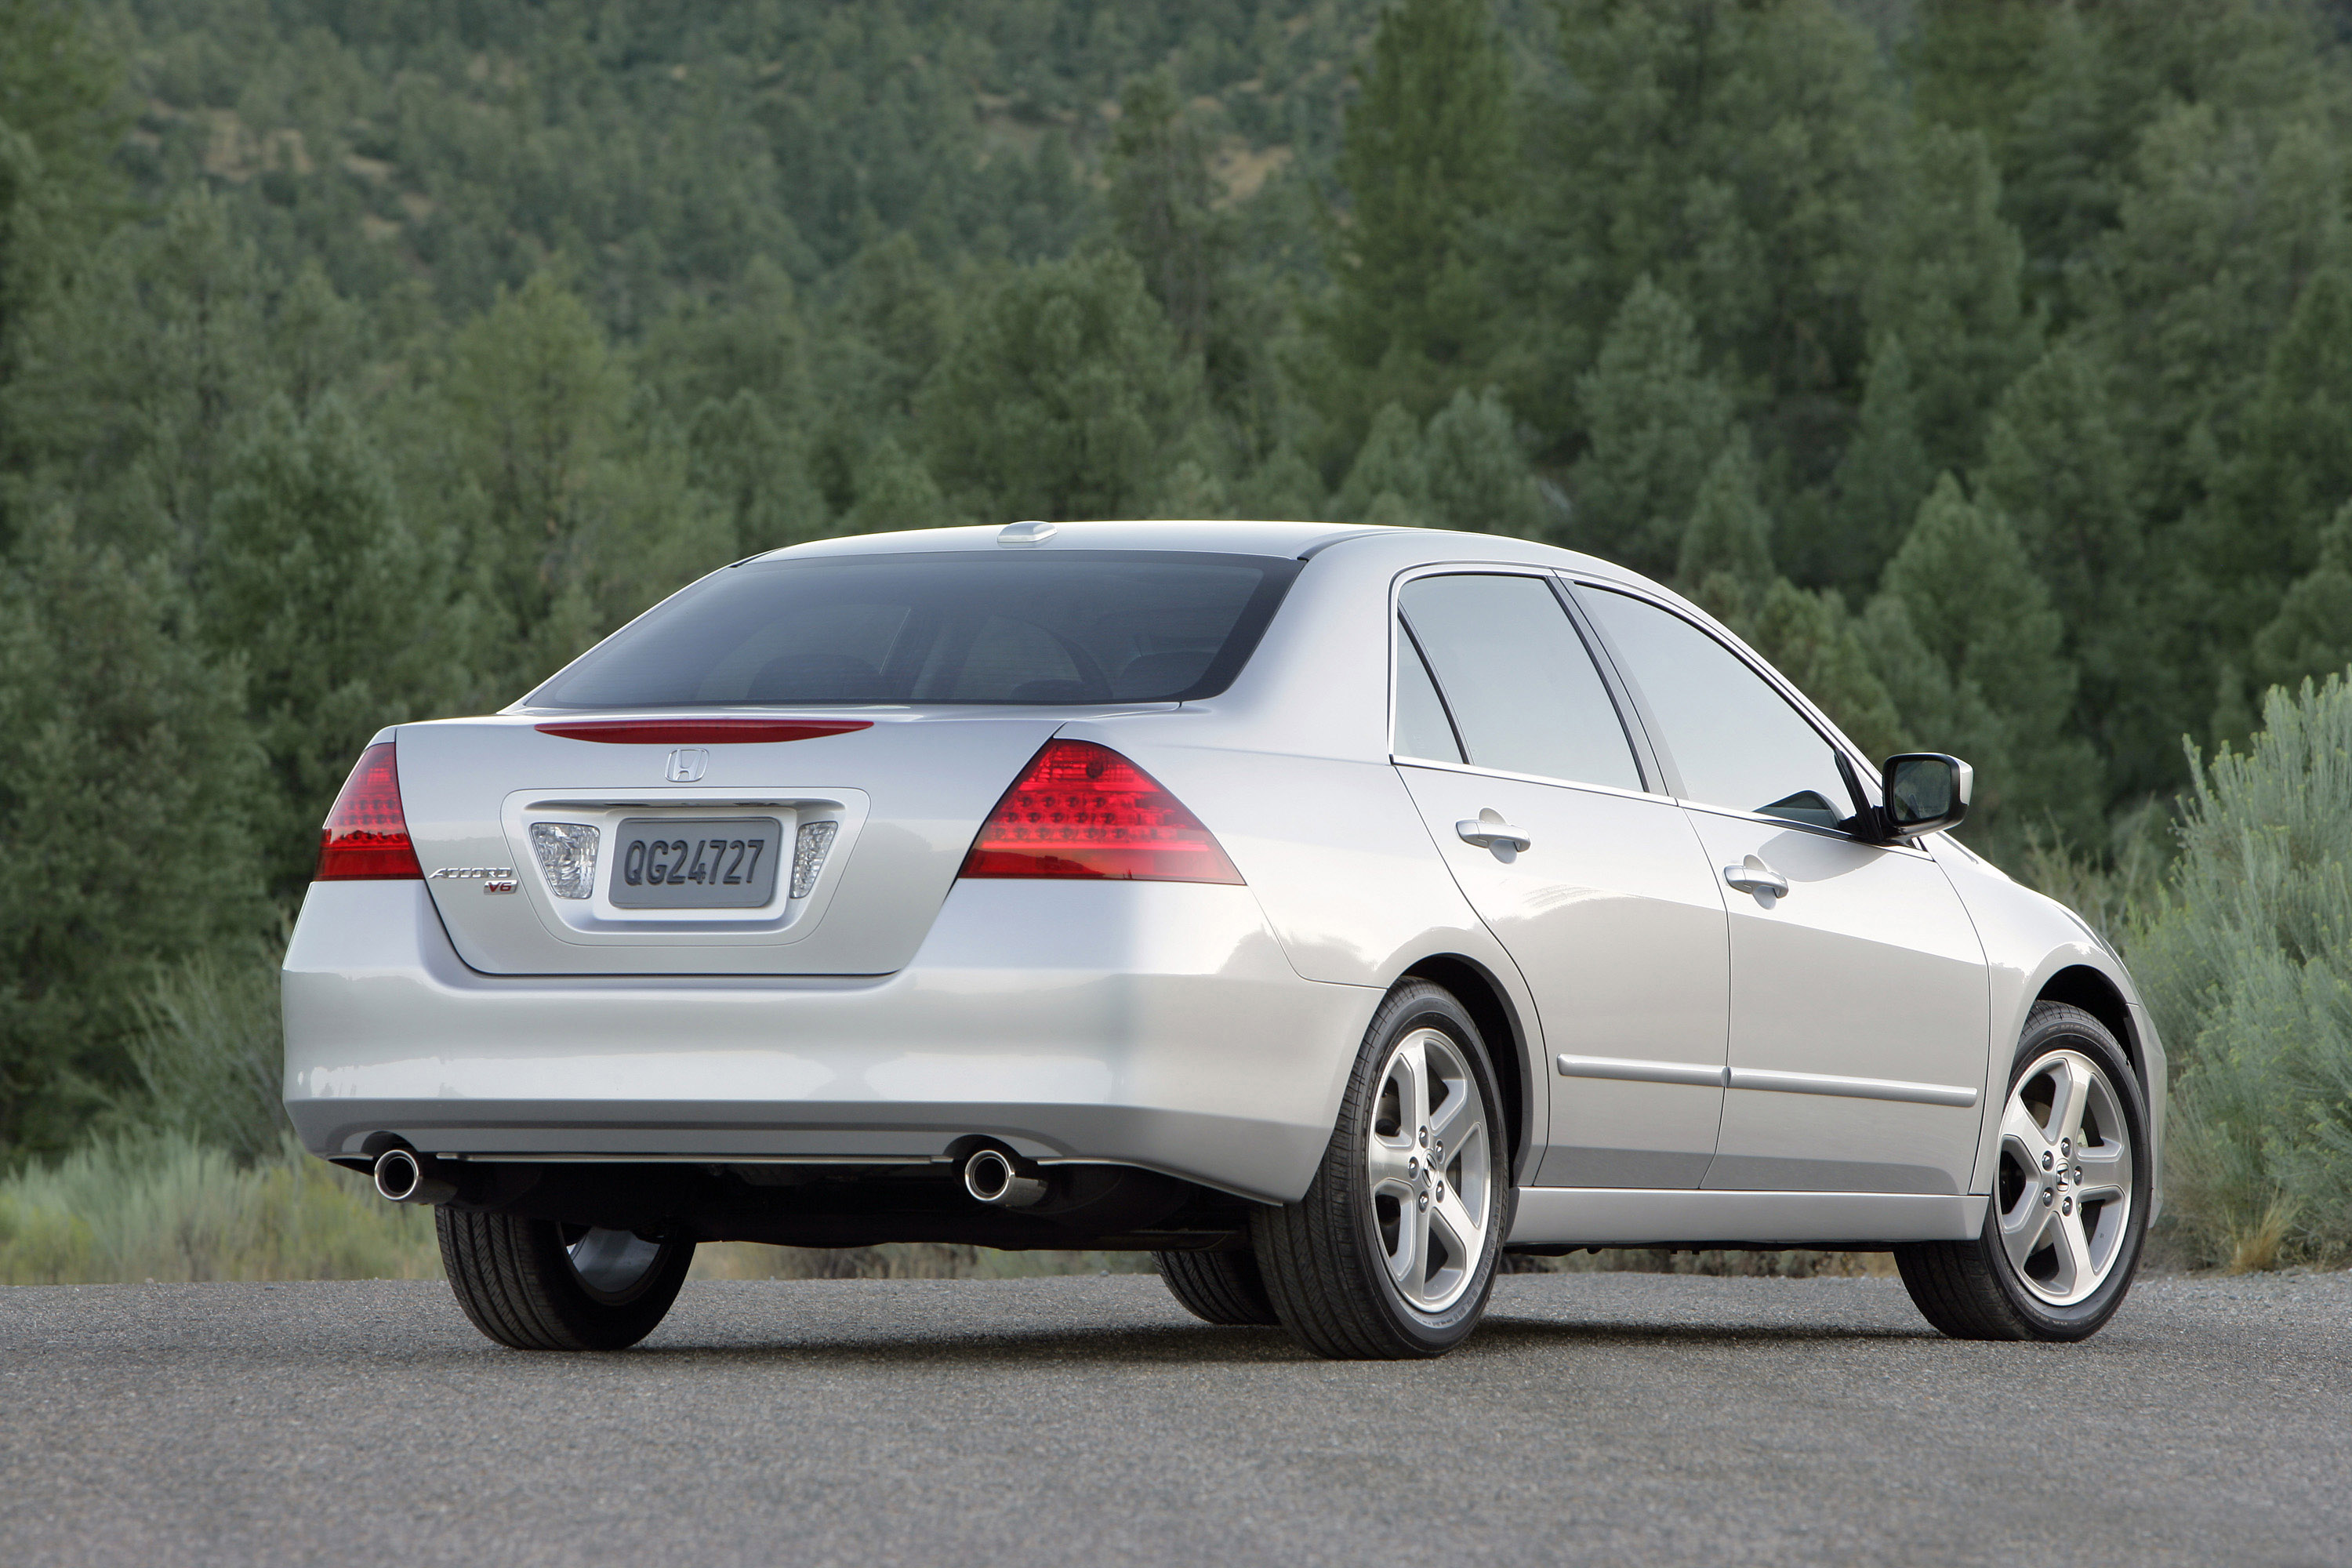 2007 honda accord coupe ex-l 4 cylinder